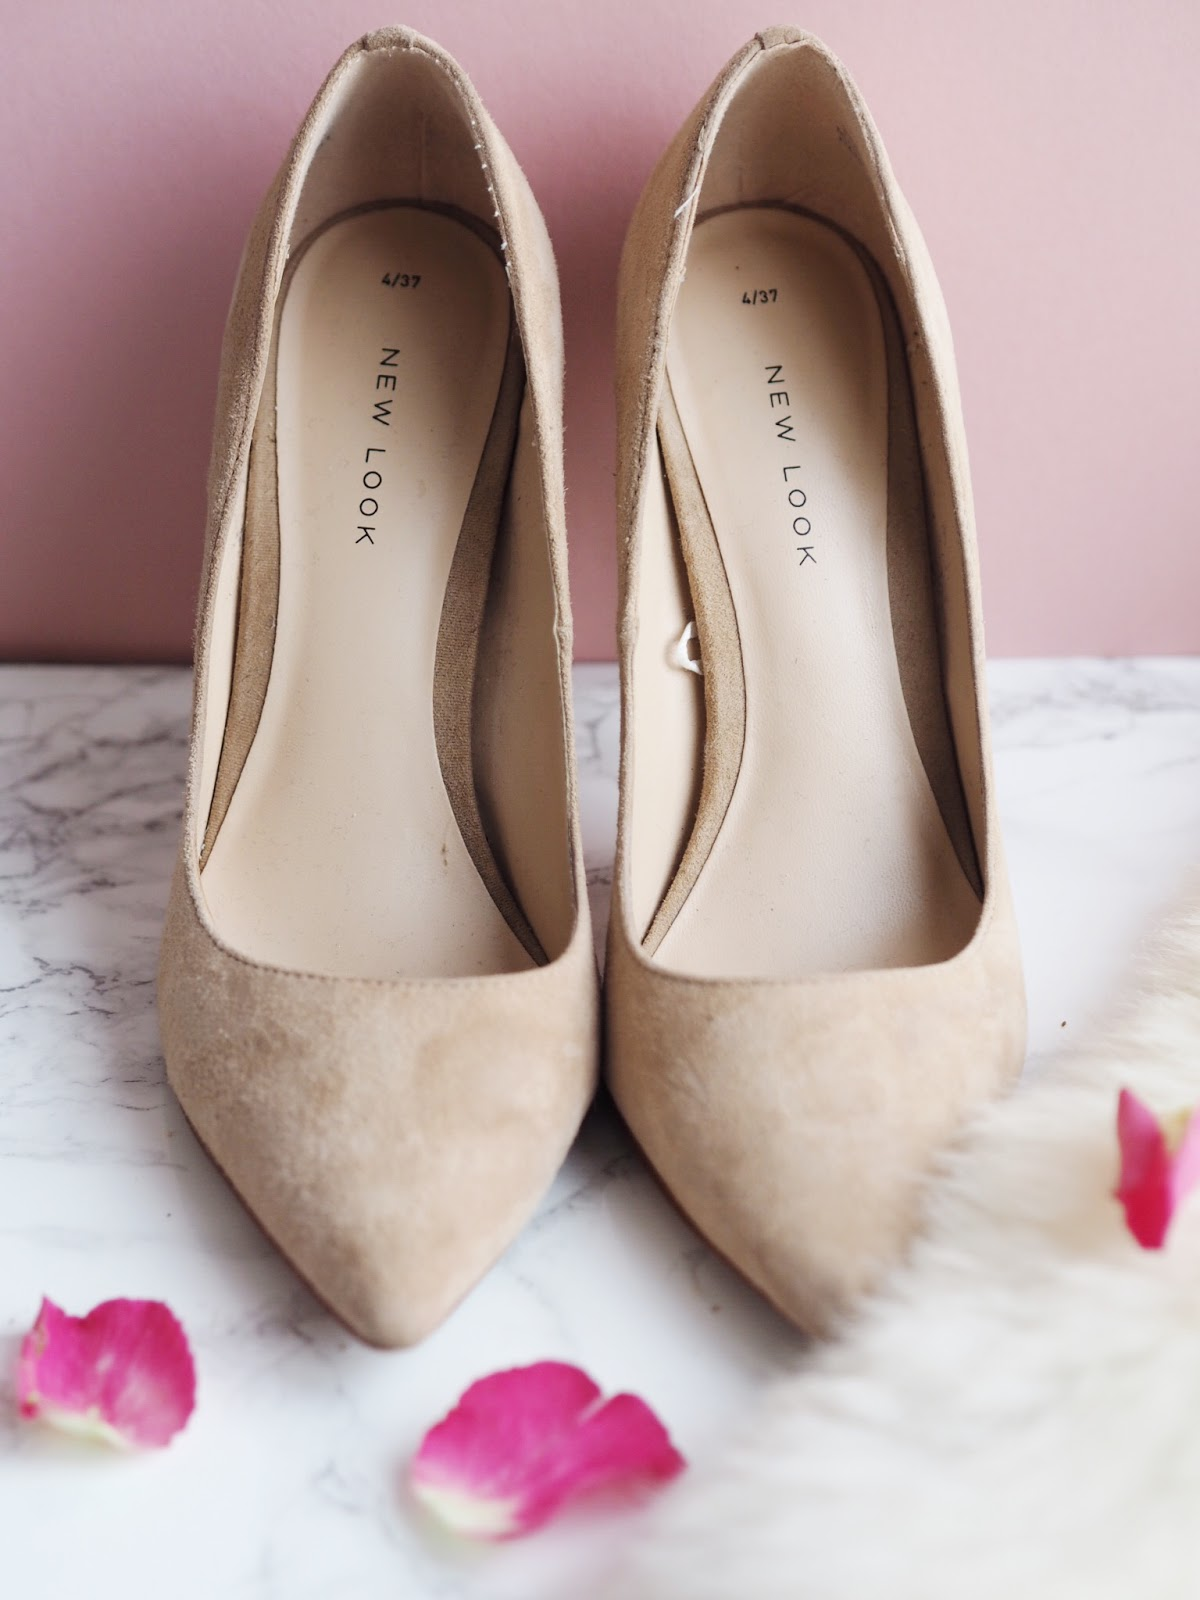 Summer Shoe Staples New Look Nude Heels Wedding Guest